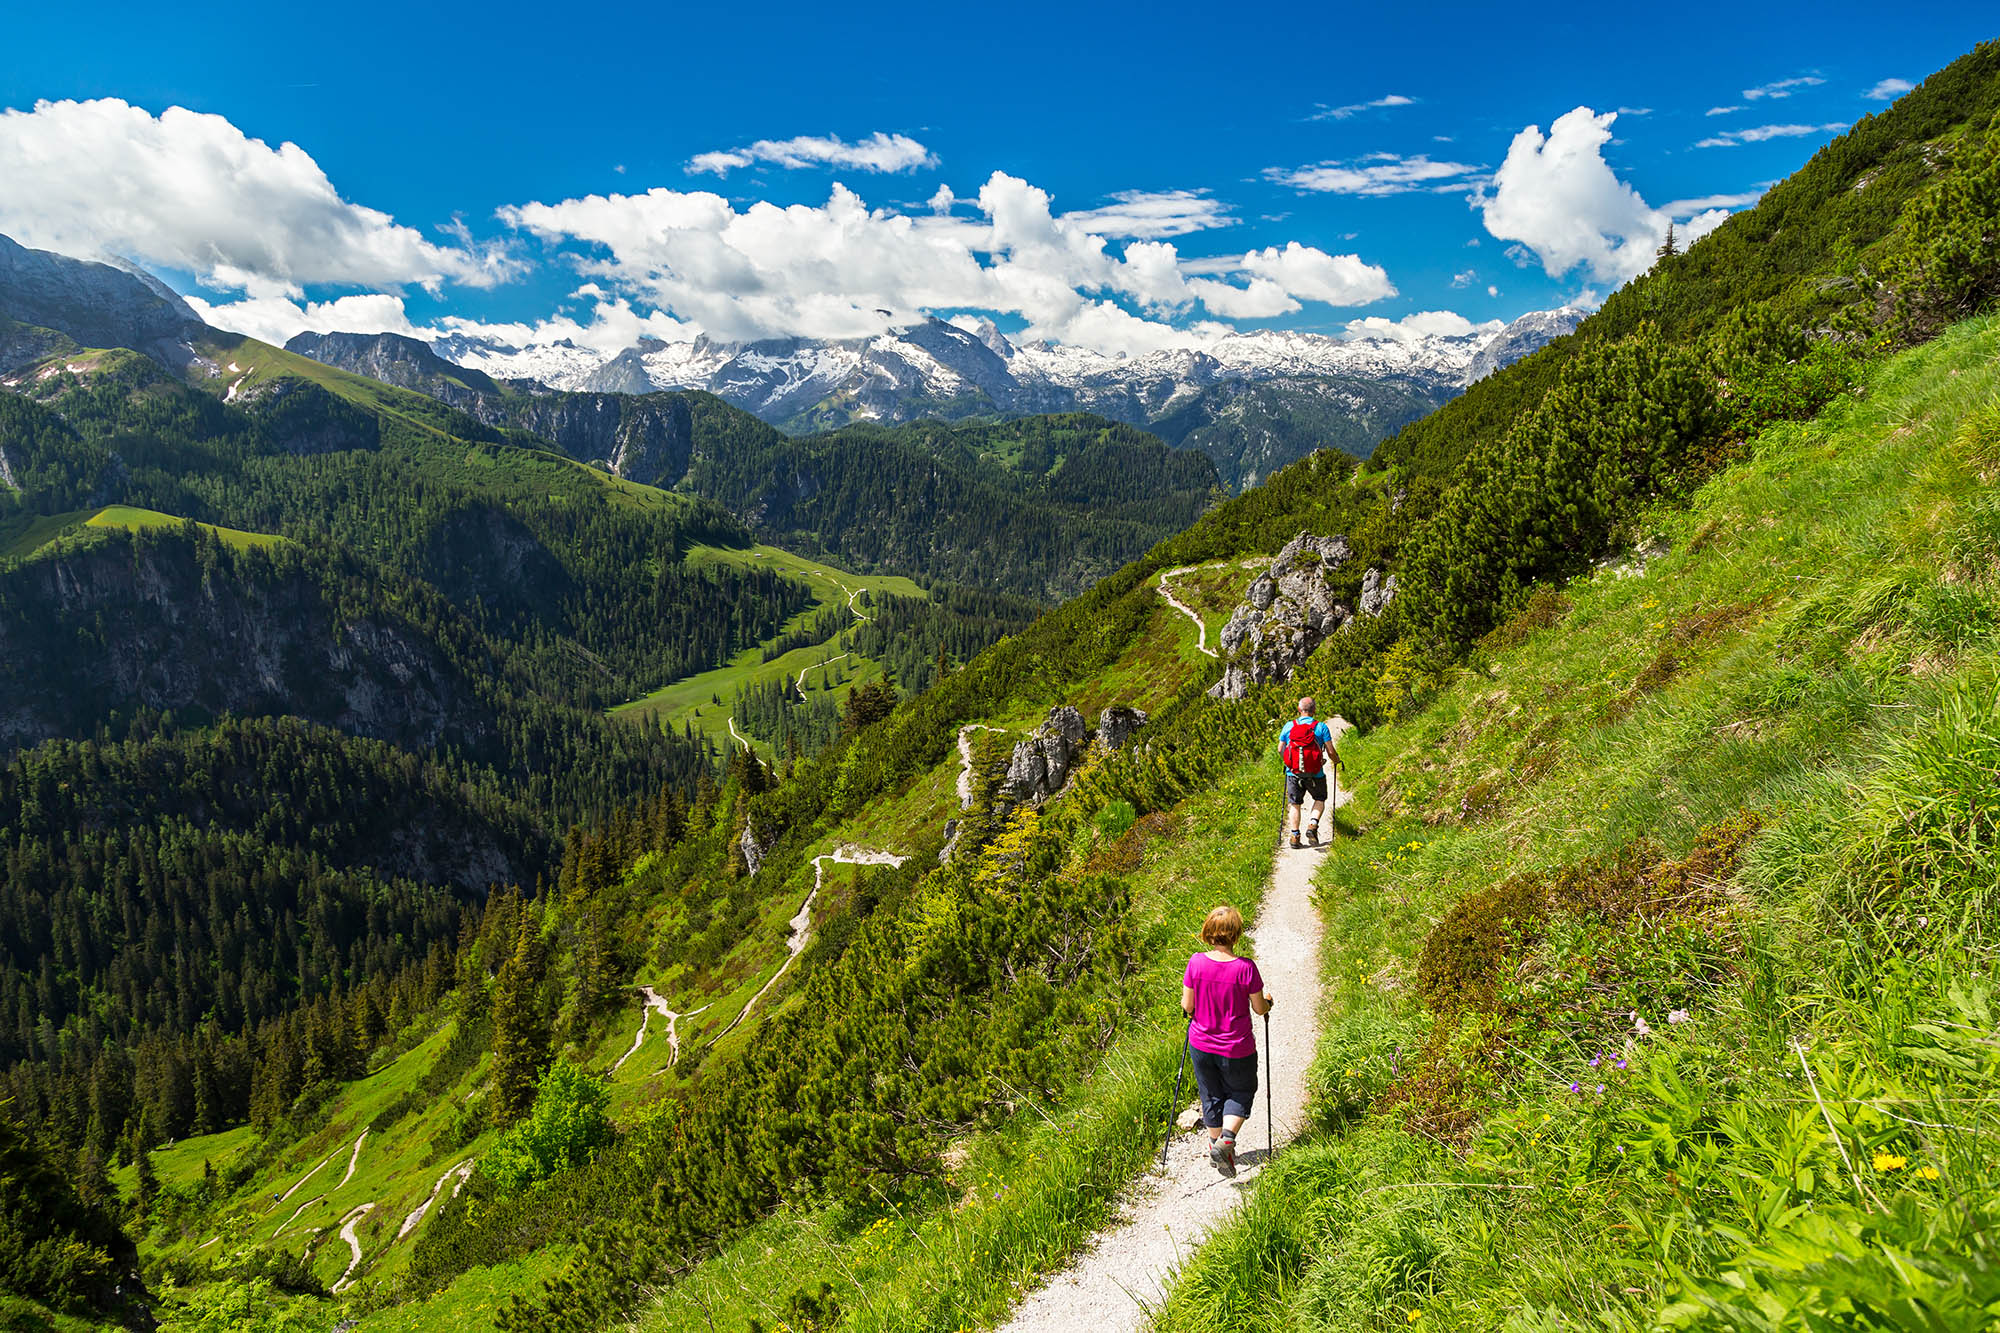 Two hikers on a narrow mountain in the Alps, Europe. A sunny mountain landscape can be seen in the background.